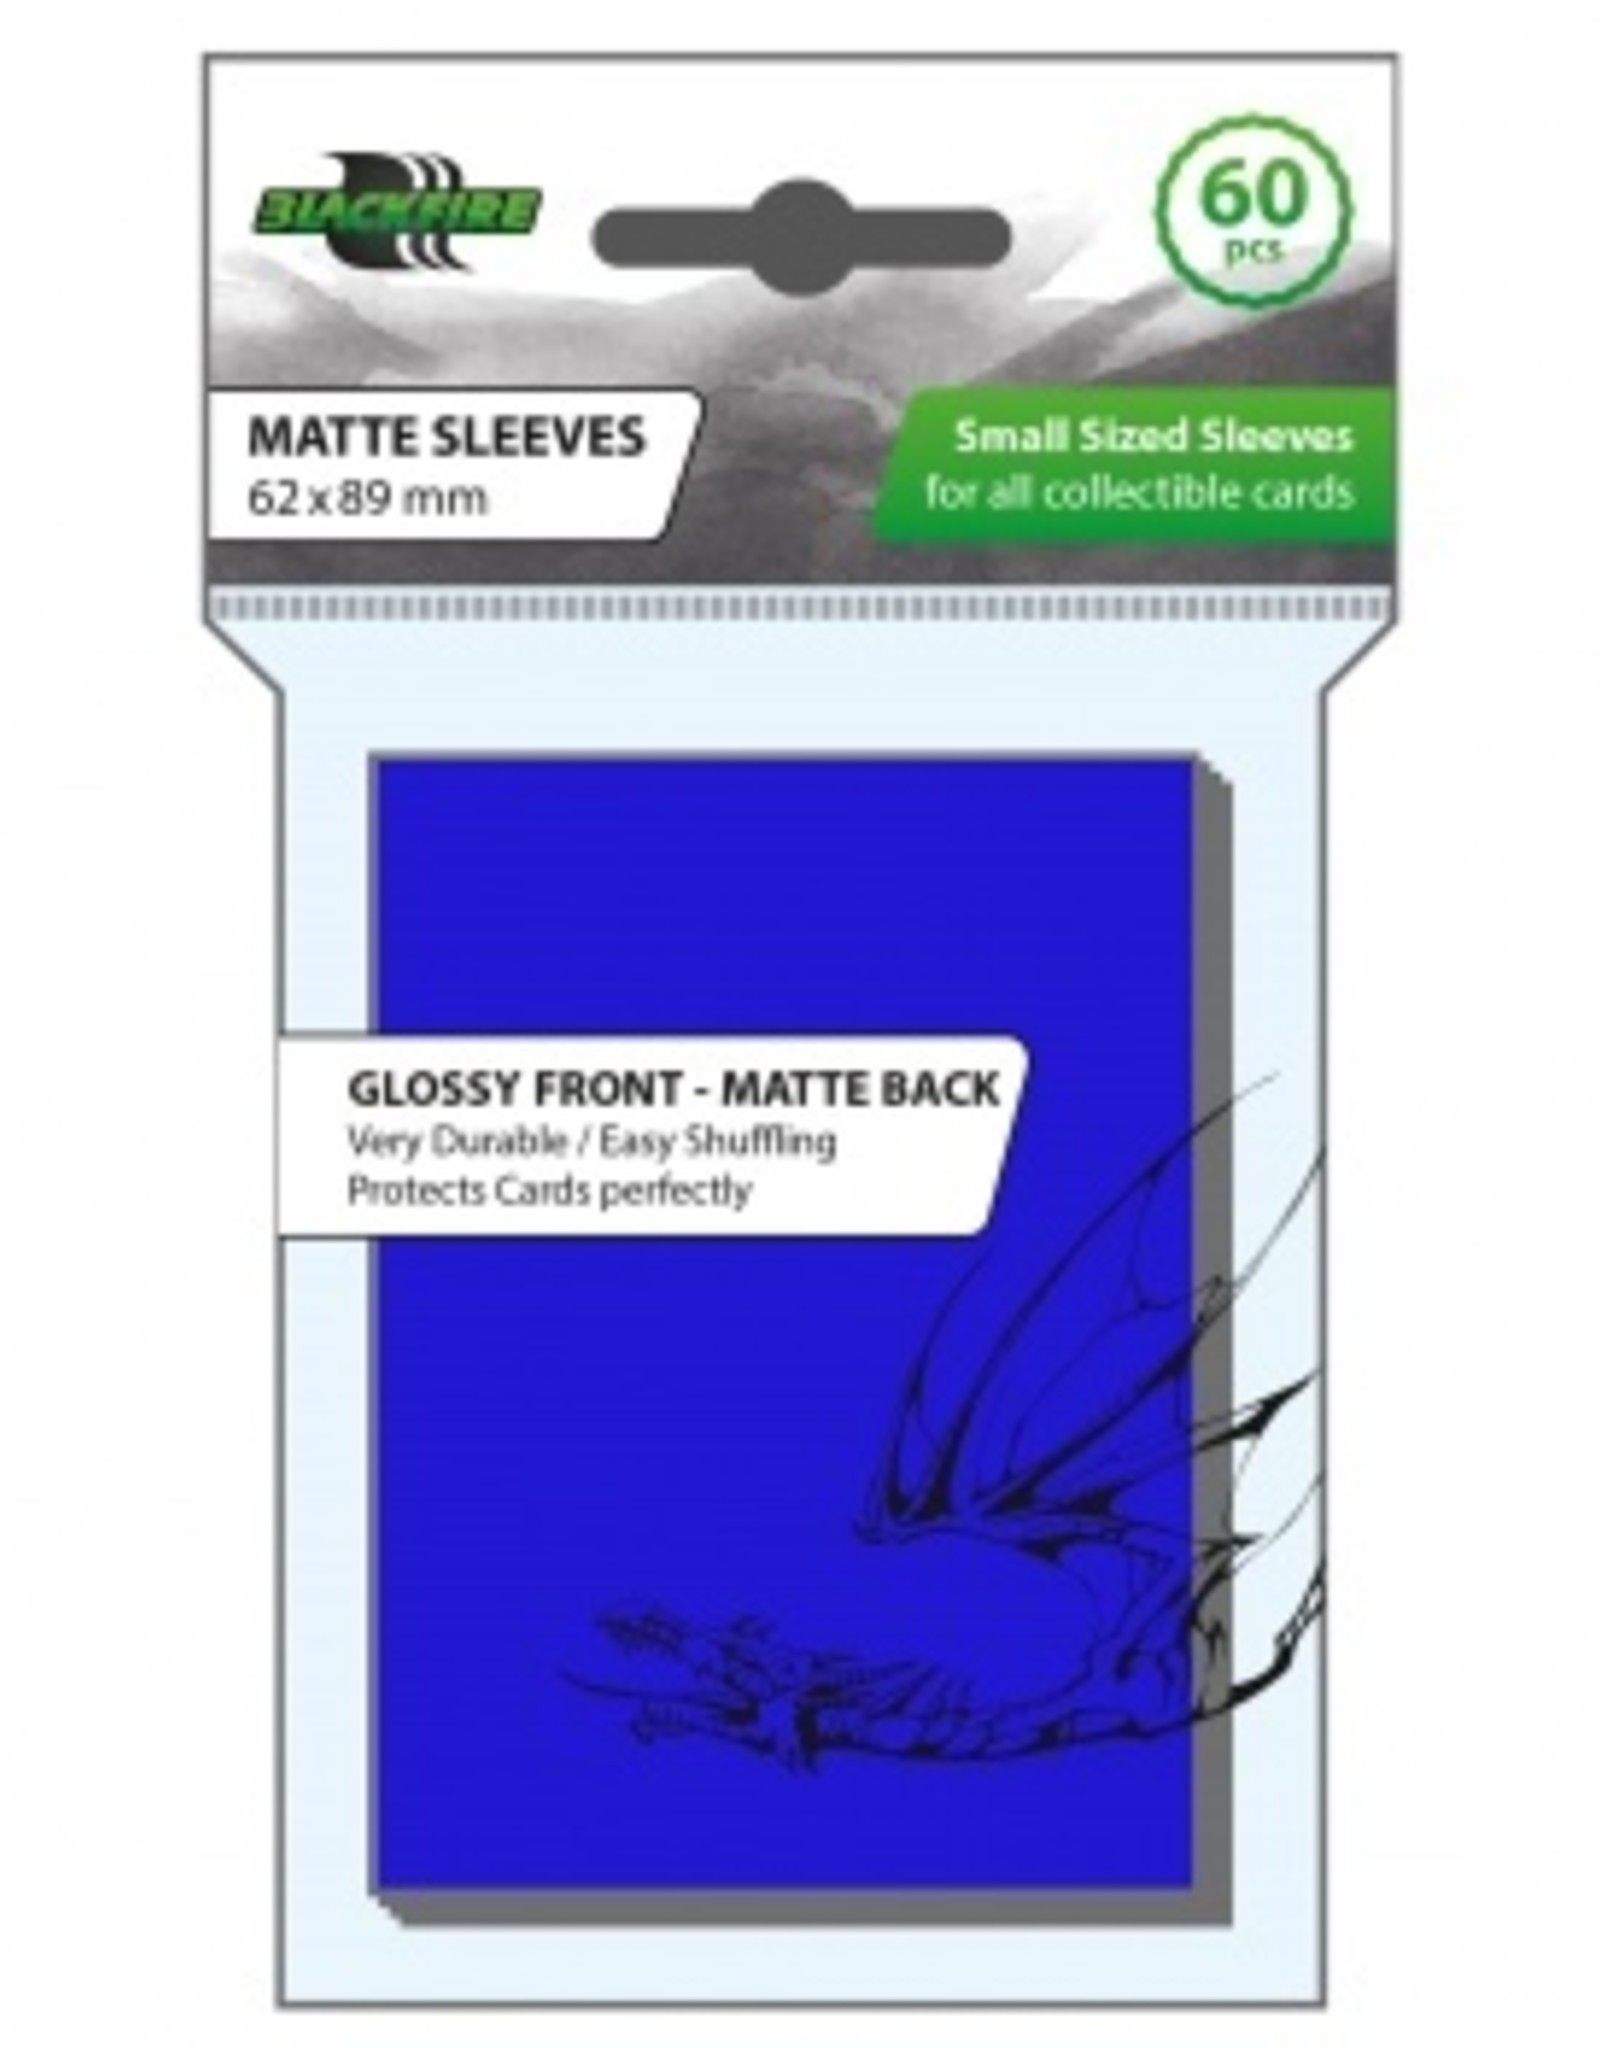 ADC Blackfire Blackfire Sleeves Small Glossy Front Matte Back Blue (60) (62x89mm)